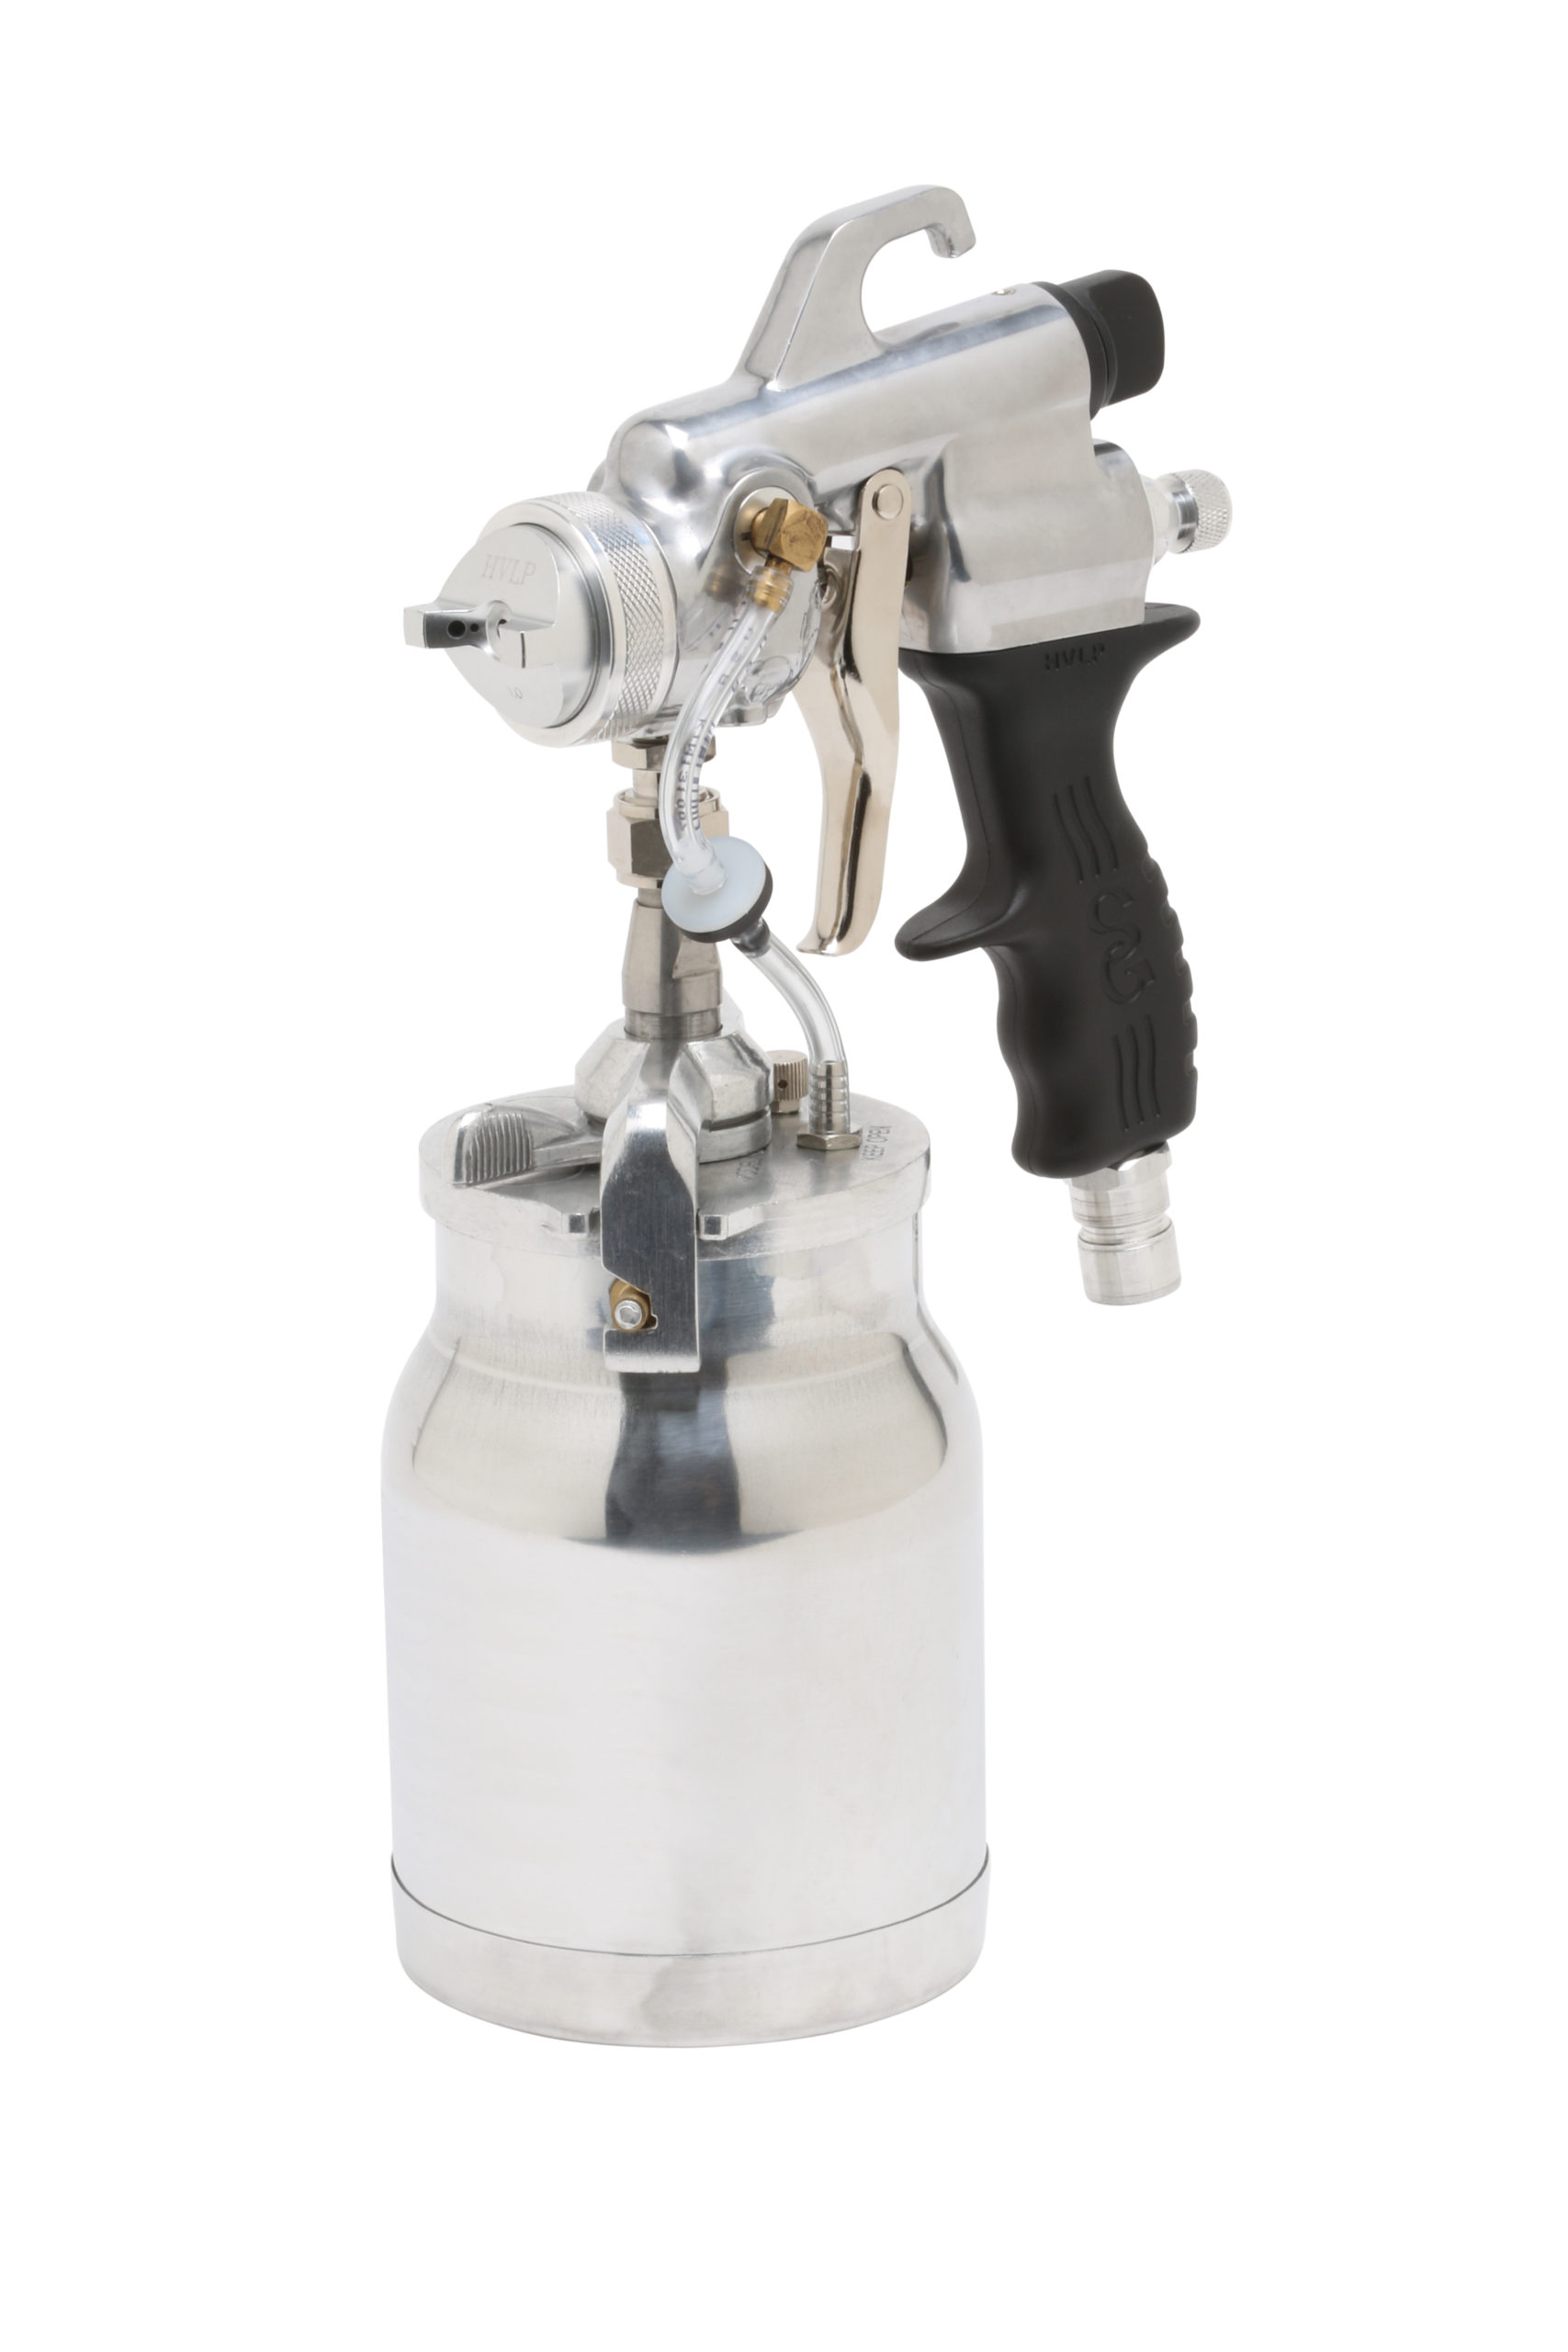 E7000 HVLP Non-Bleeder Spray Gun